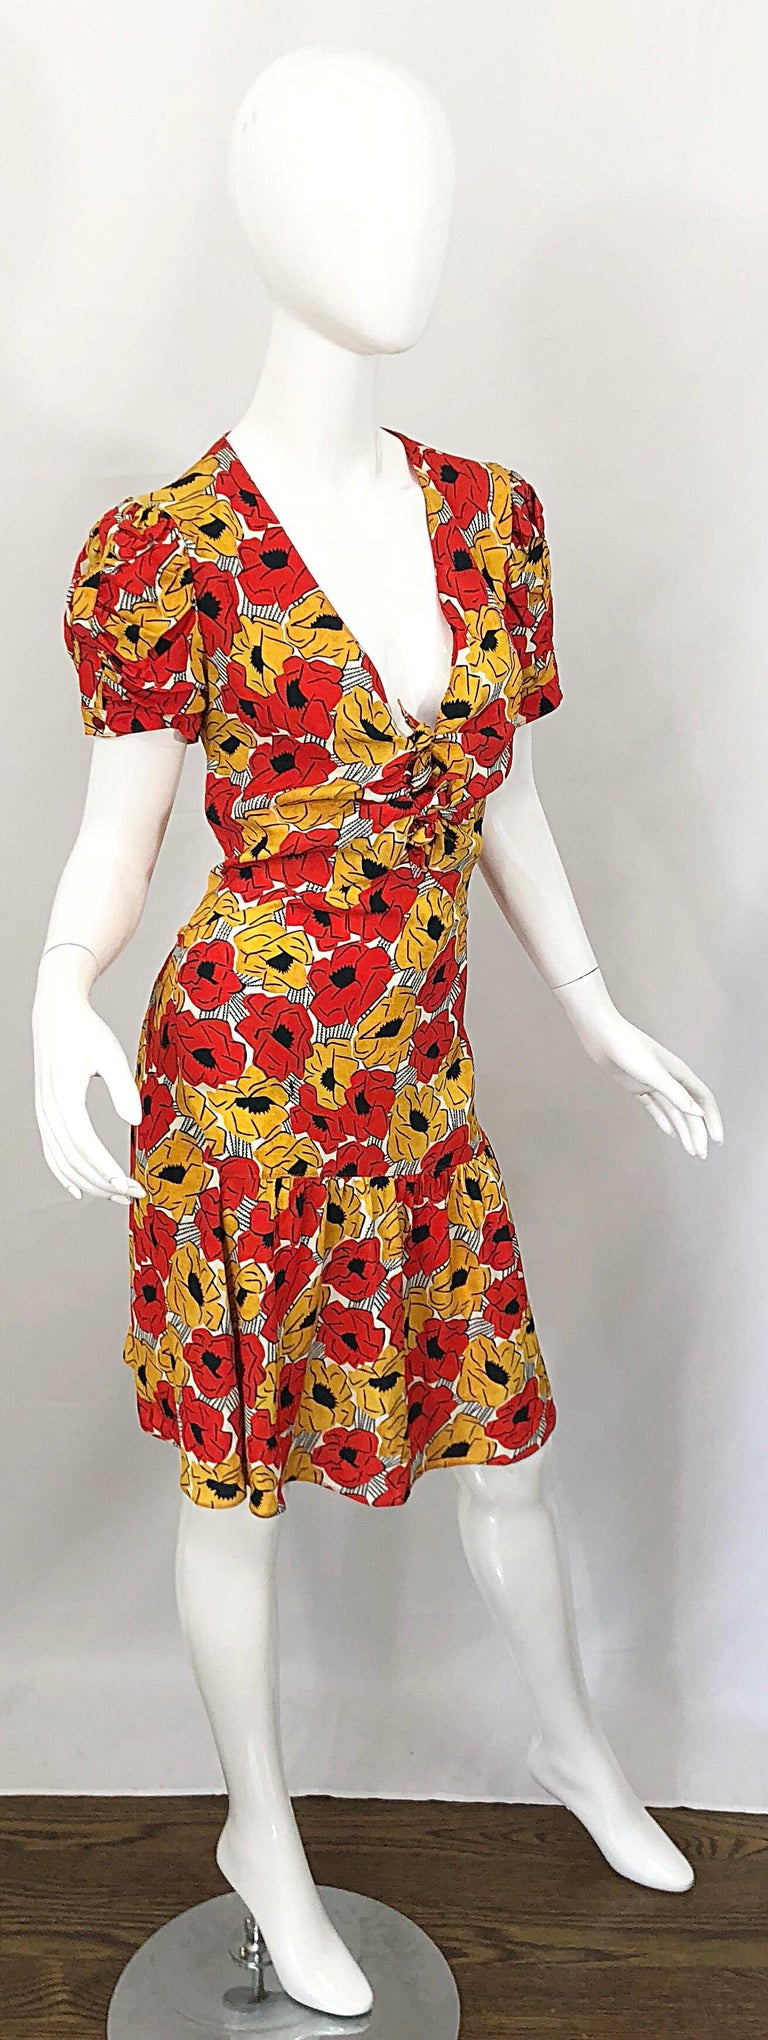 Yves Saint Laurent YSL Size 42 / 10 Yellow + Red Poppy Print Drop Waist Dress For Sale 8